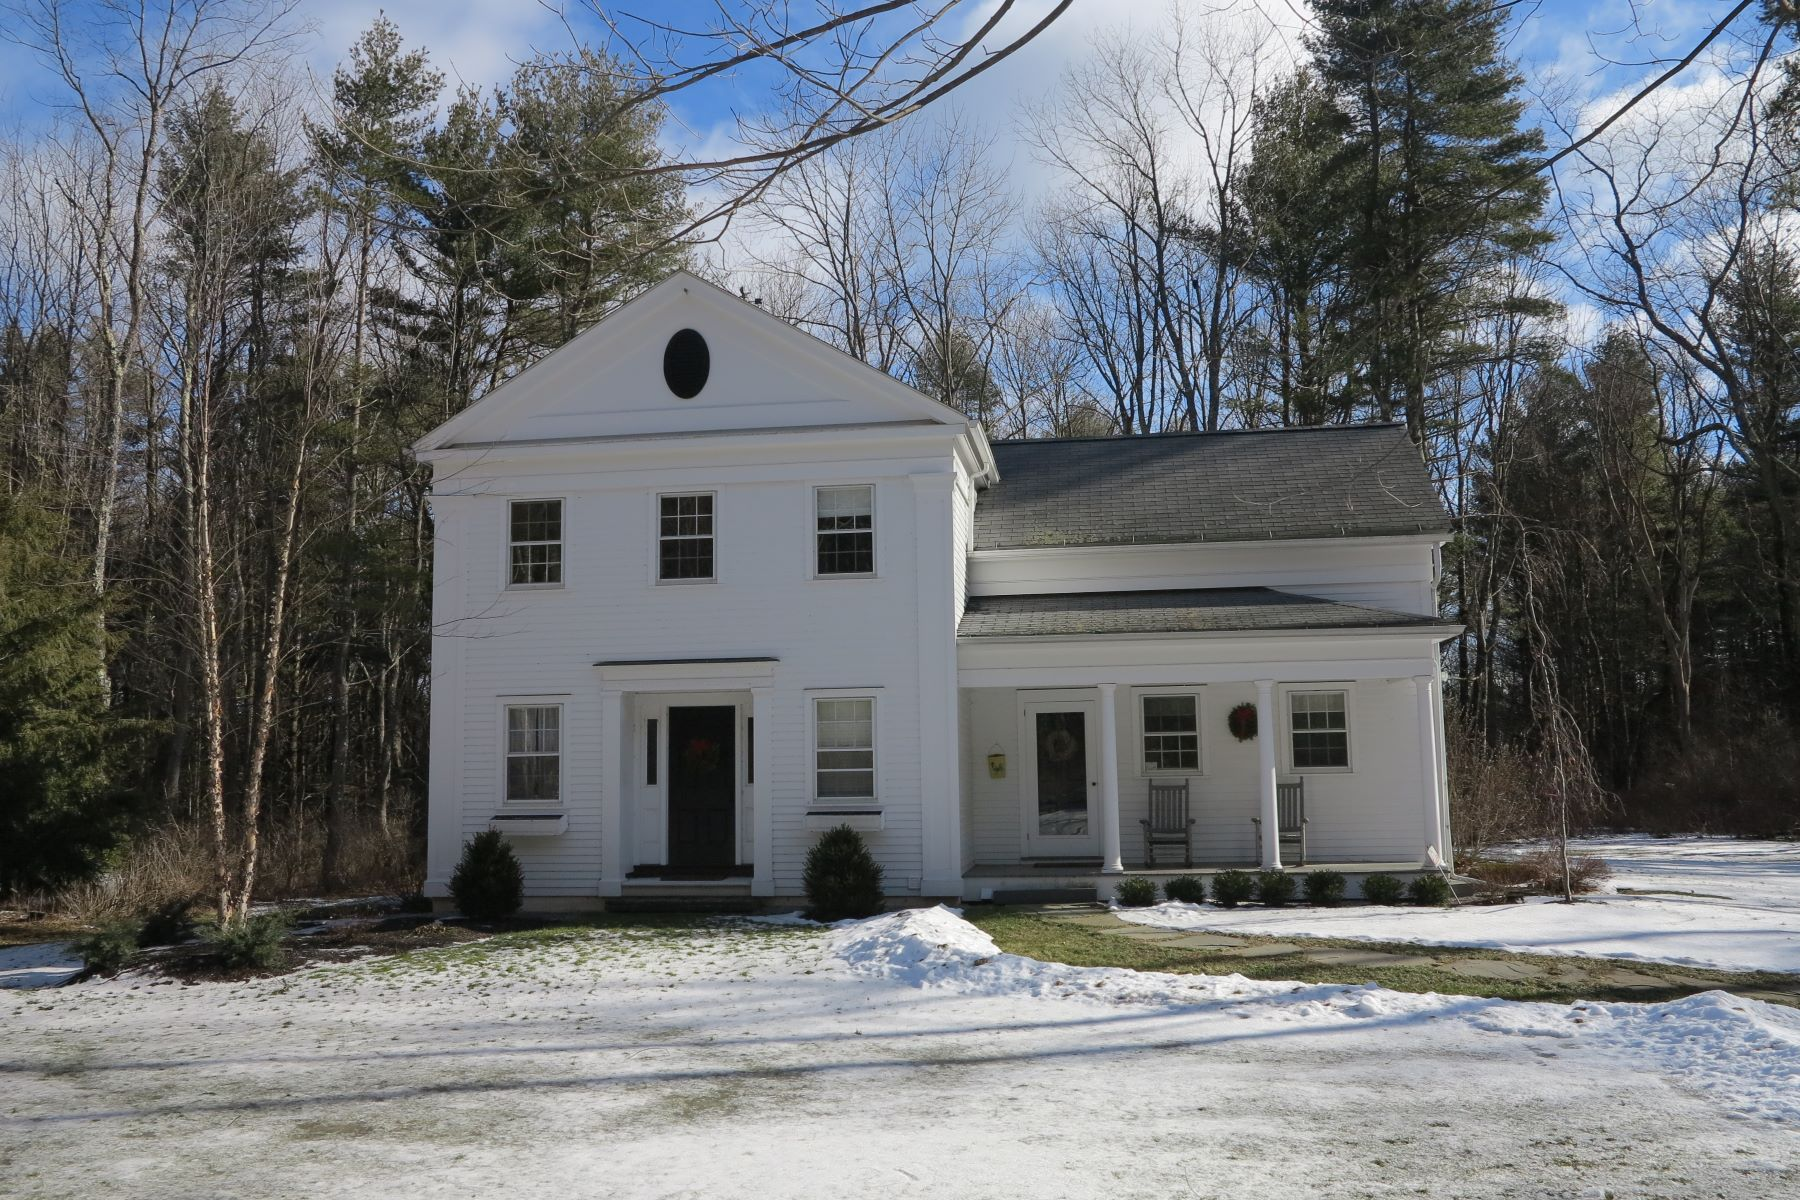 Single Family Home for Sale at Classic Reproduction Greek Revival 355 South Undermountain Rd Sheffield, Massachusetts 01257 United States